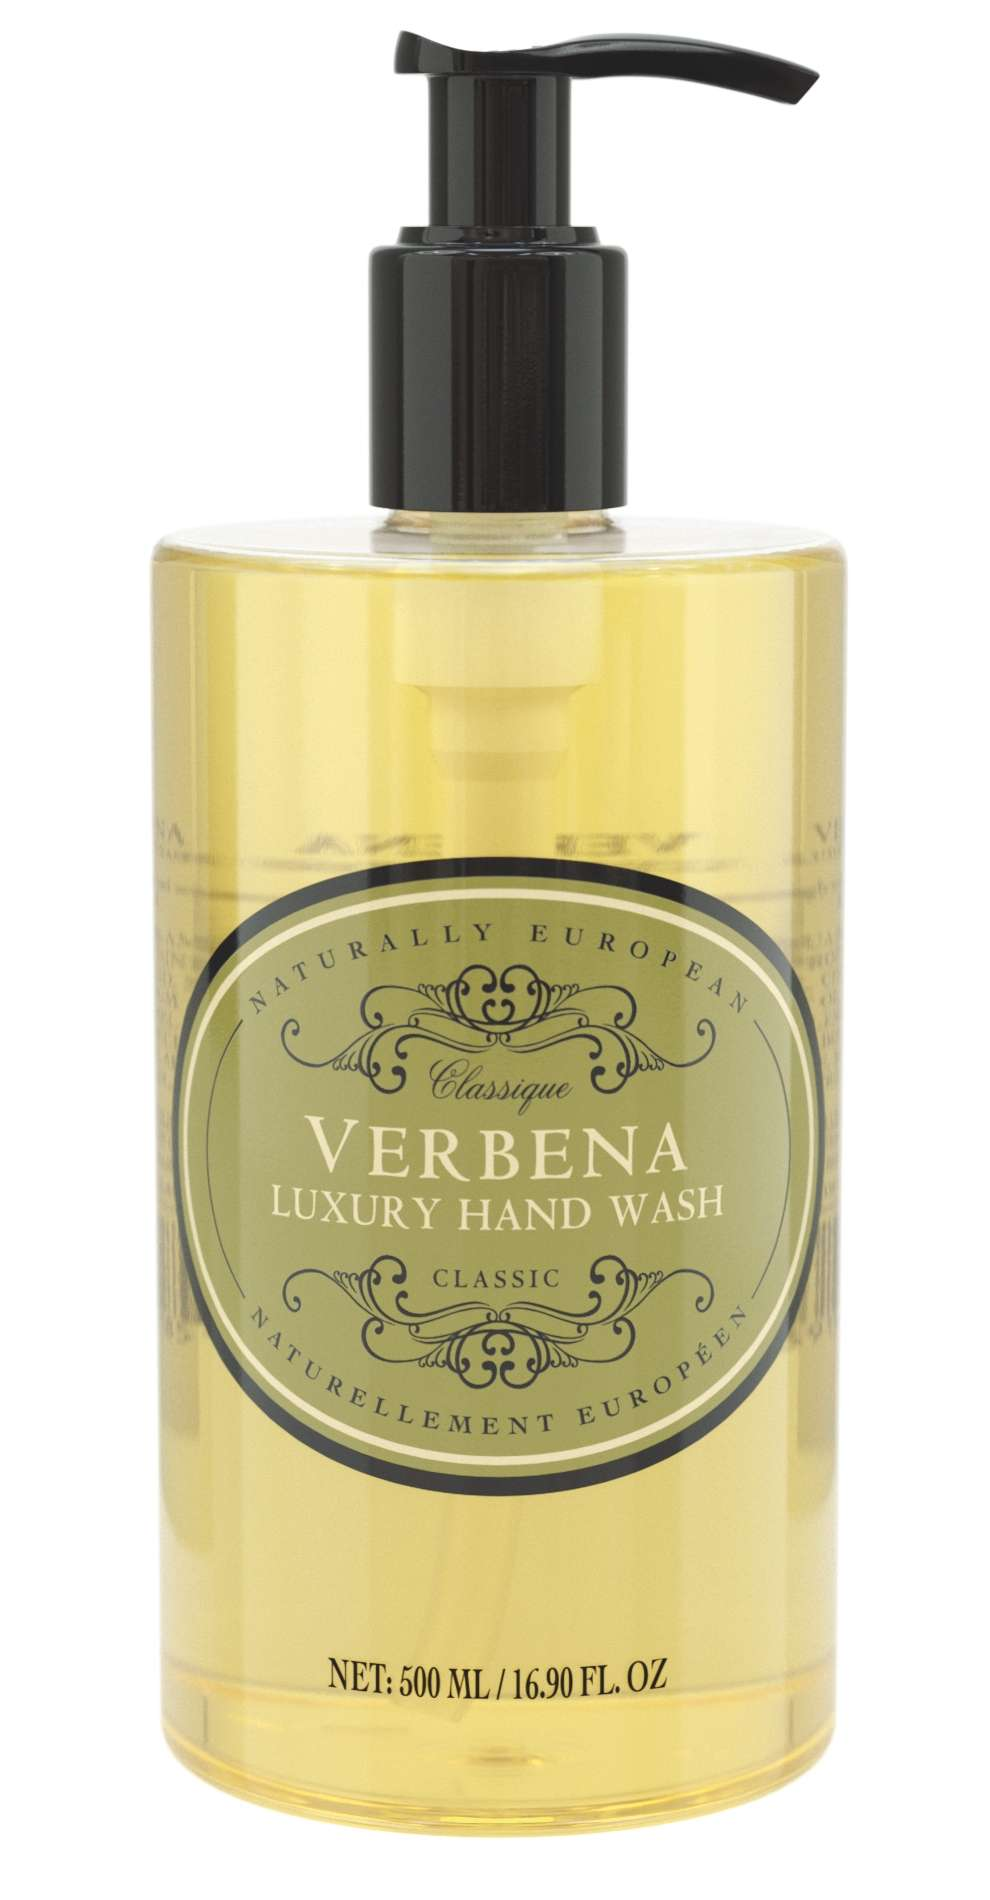 Naturally European Verbena hand wash